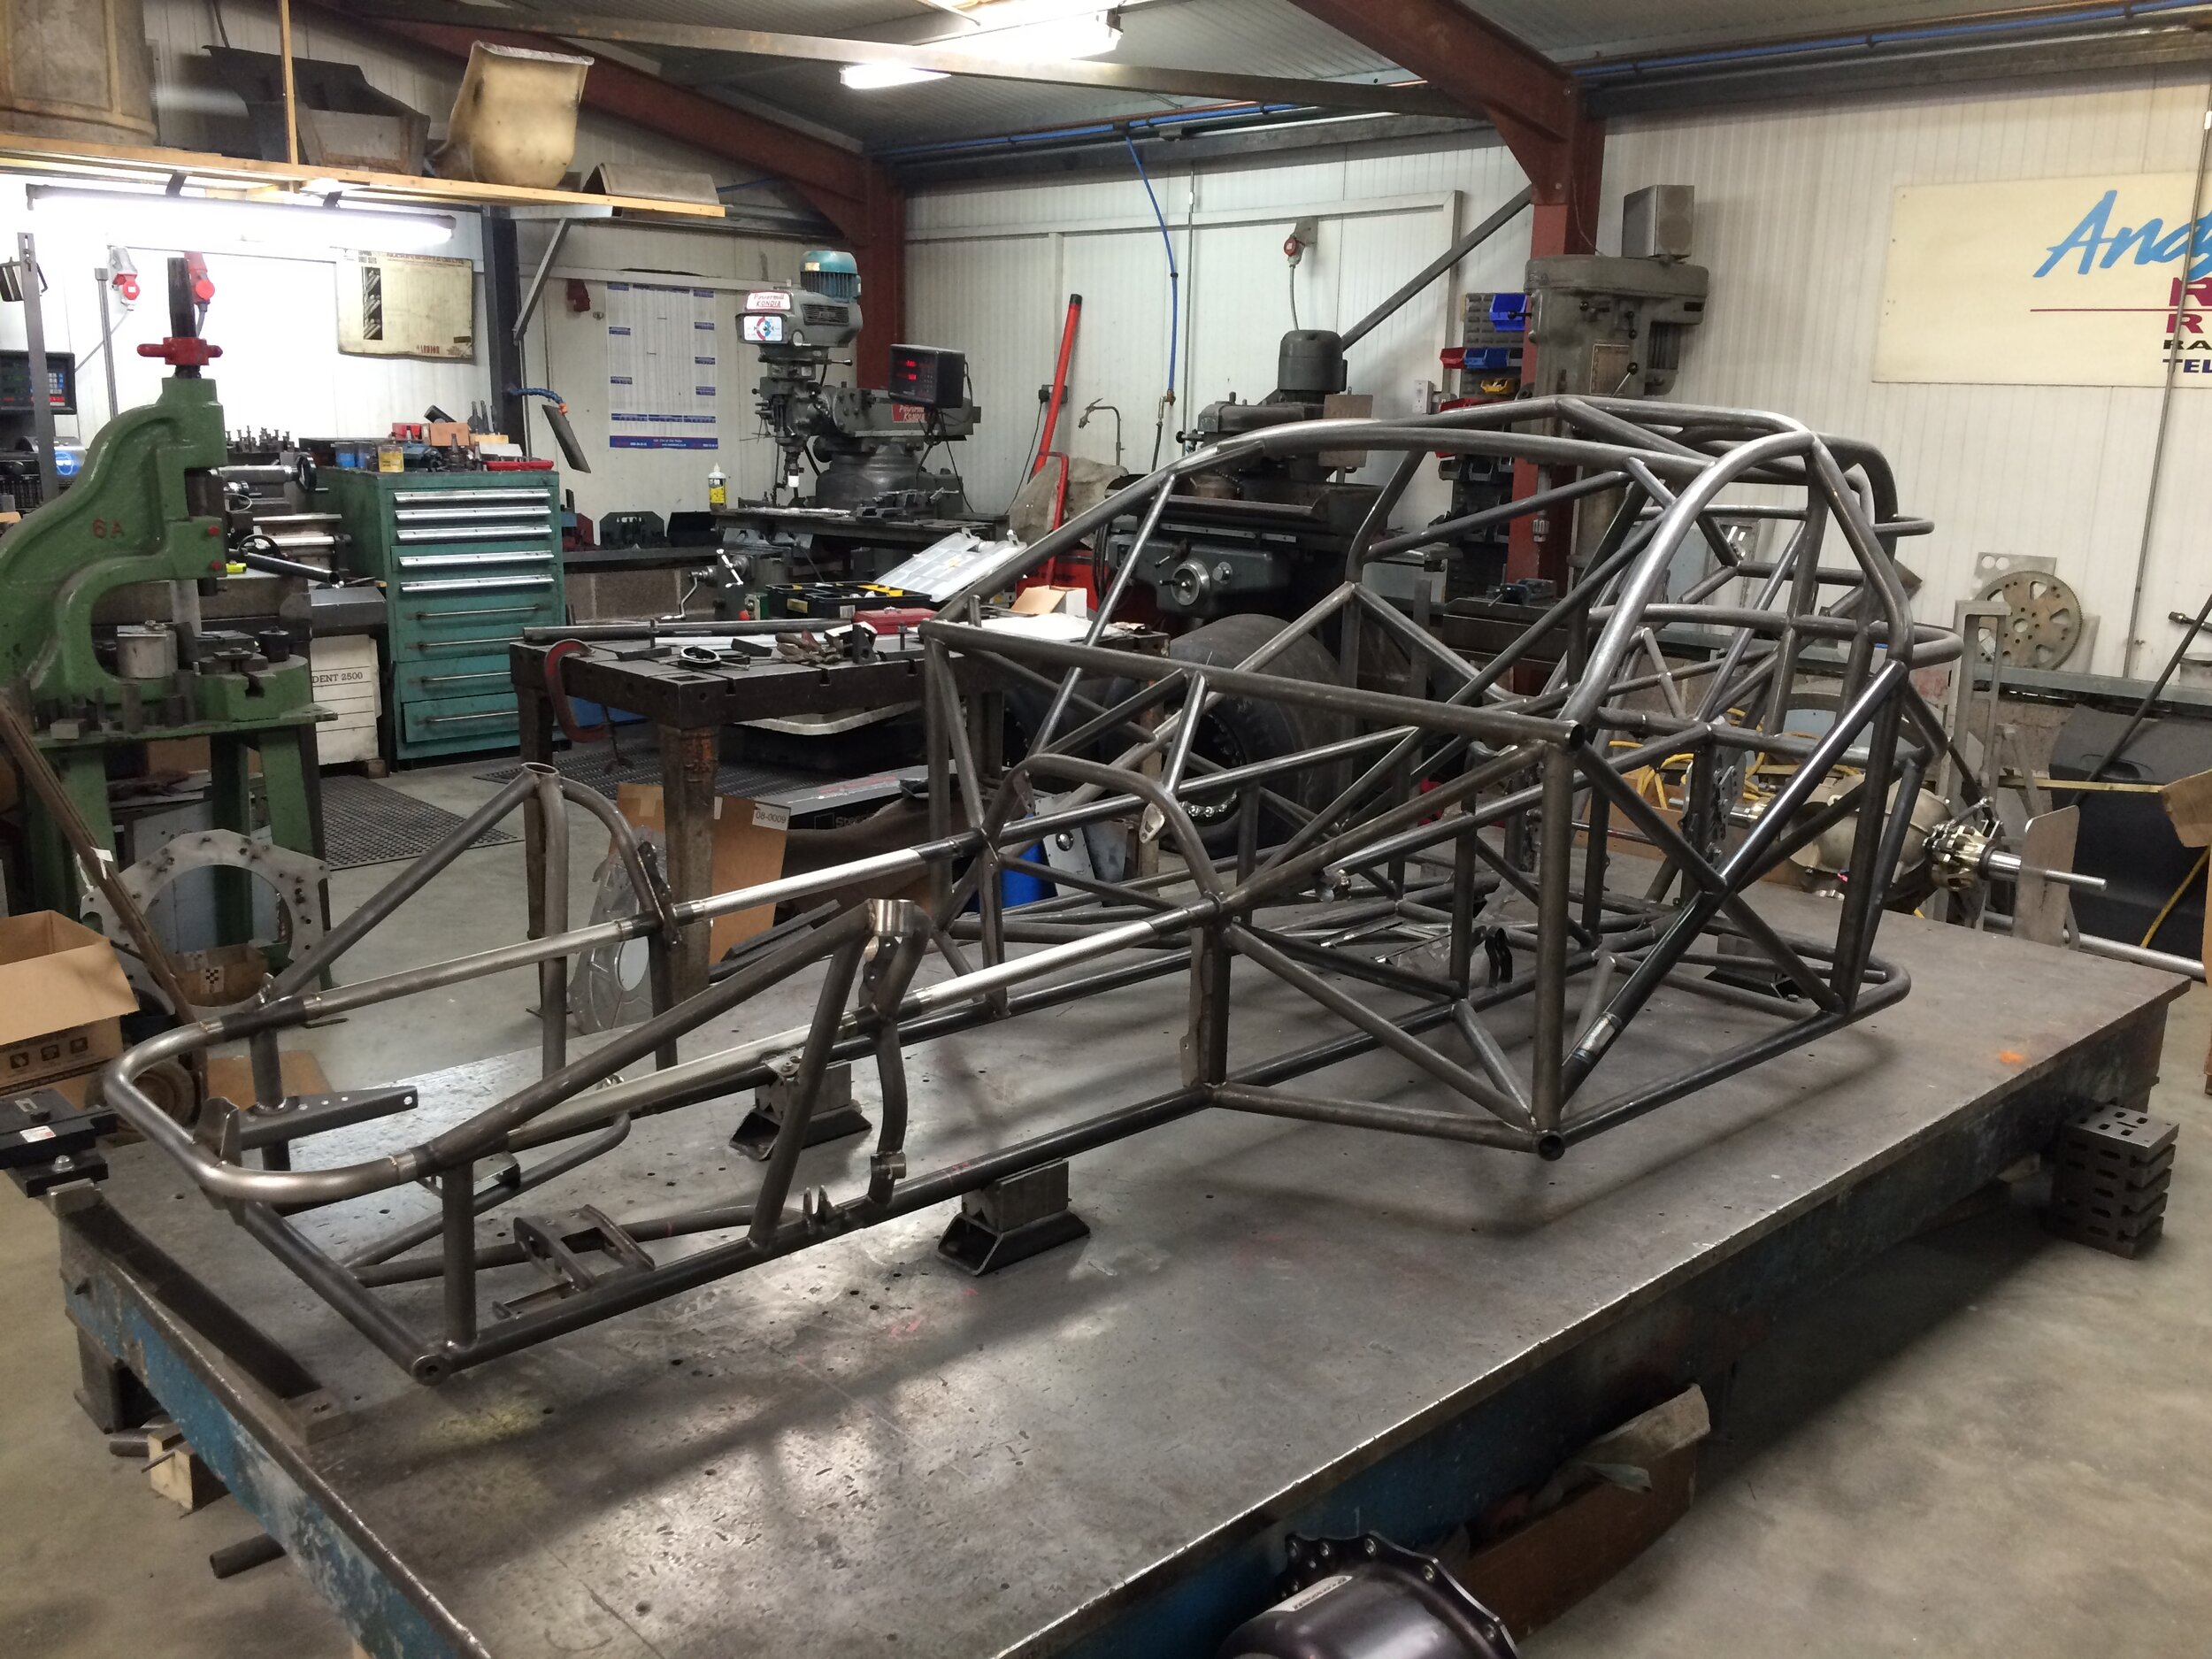 Bespoke Motorsport Fabrication Roll Cages Tubular Spaceframes Axle Suspension Services And More Robinson Race Cars